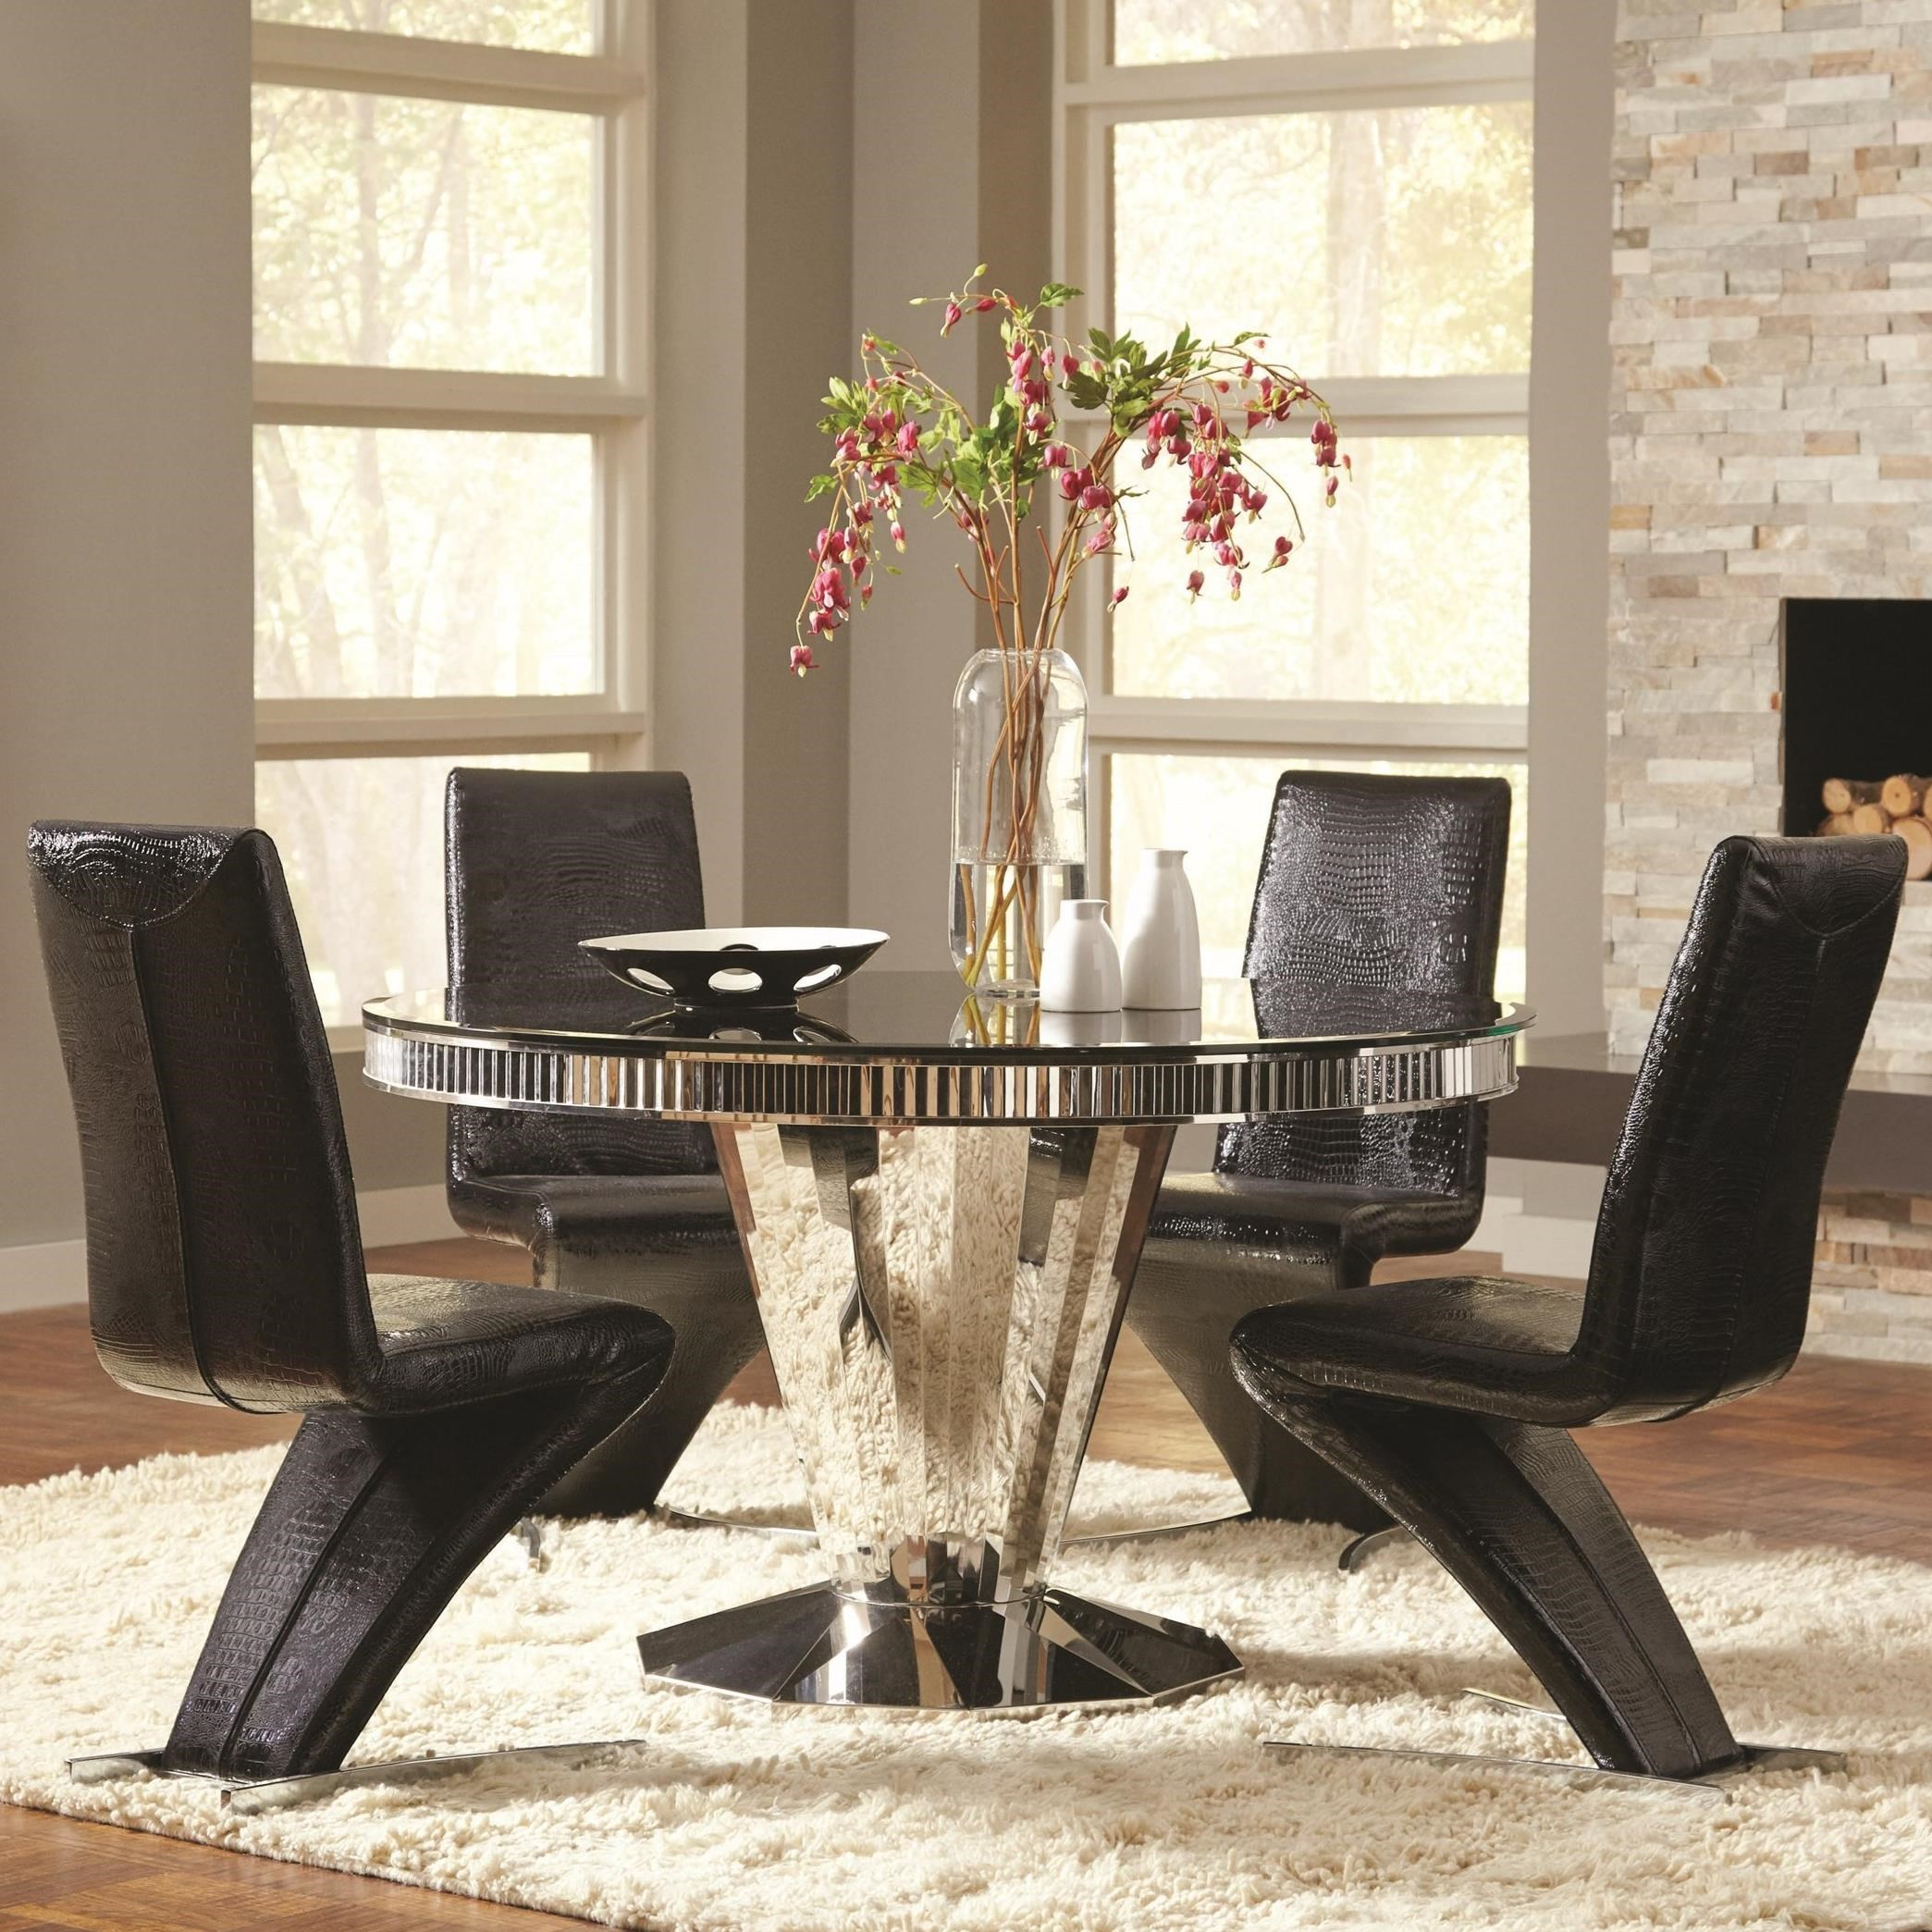 Dining Room Sets Dallas Tx: Coaster Barzini 5pc Black Stainless Steel Dining Table Set